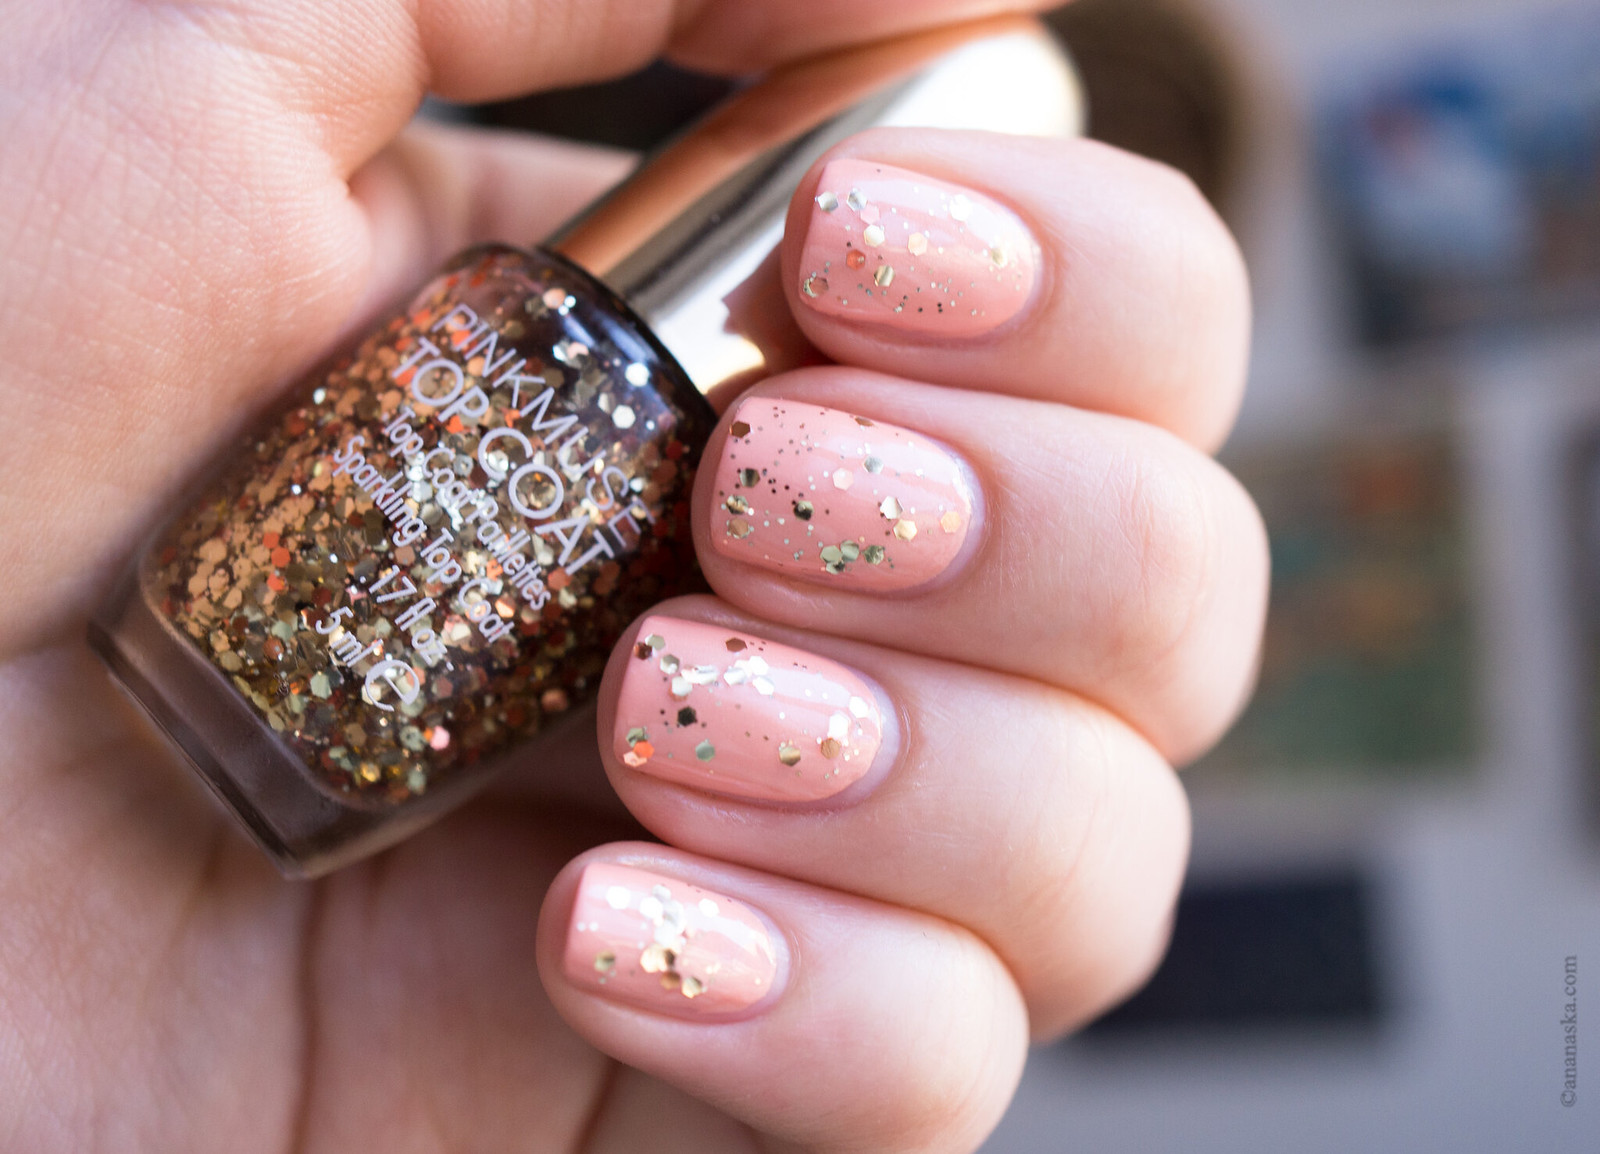 Pink Muse Lasting Color Gel 176 Apricot Pink + Pink Muse Top Coat в оттенке 004 Pink Muse Paillettes